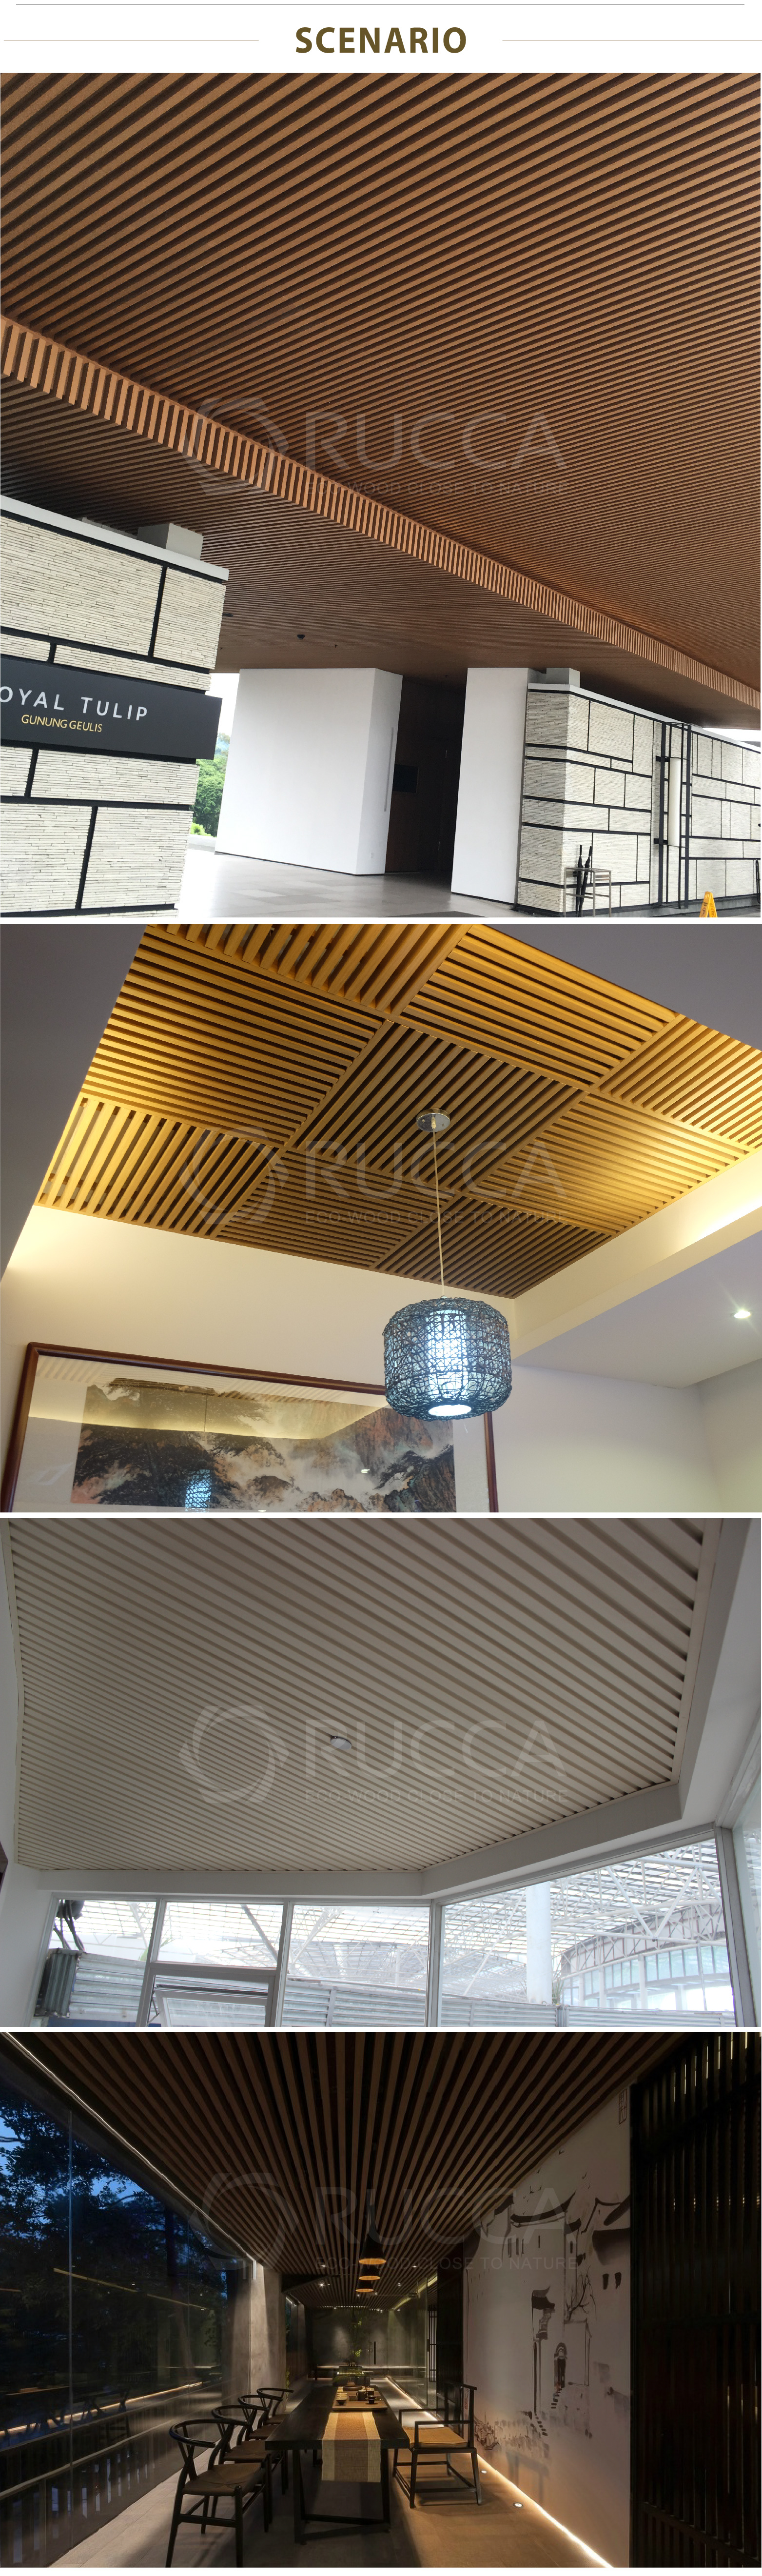 Rucca Decorative Ceiling Wood Pvc Plastic Composite False Ceiling For Interior Suspended Decoration Hall Ceiling Panels Design View Pvc Composite Ceiling Panels Rucca Product Details From Foshan Ruccawood Co Ltd On Alibaba Com